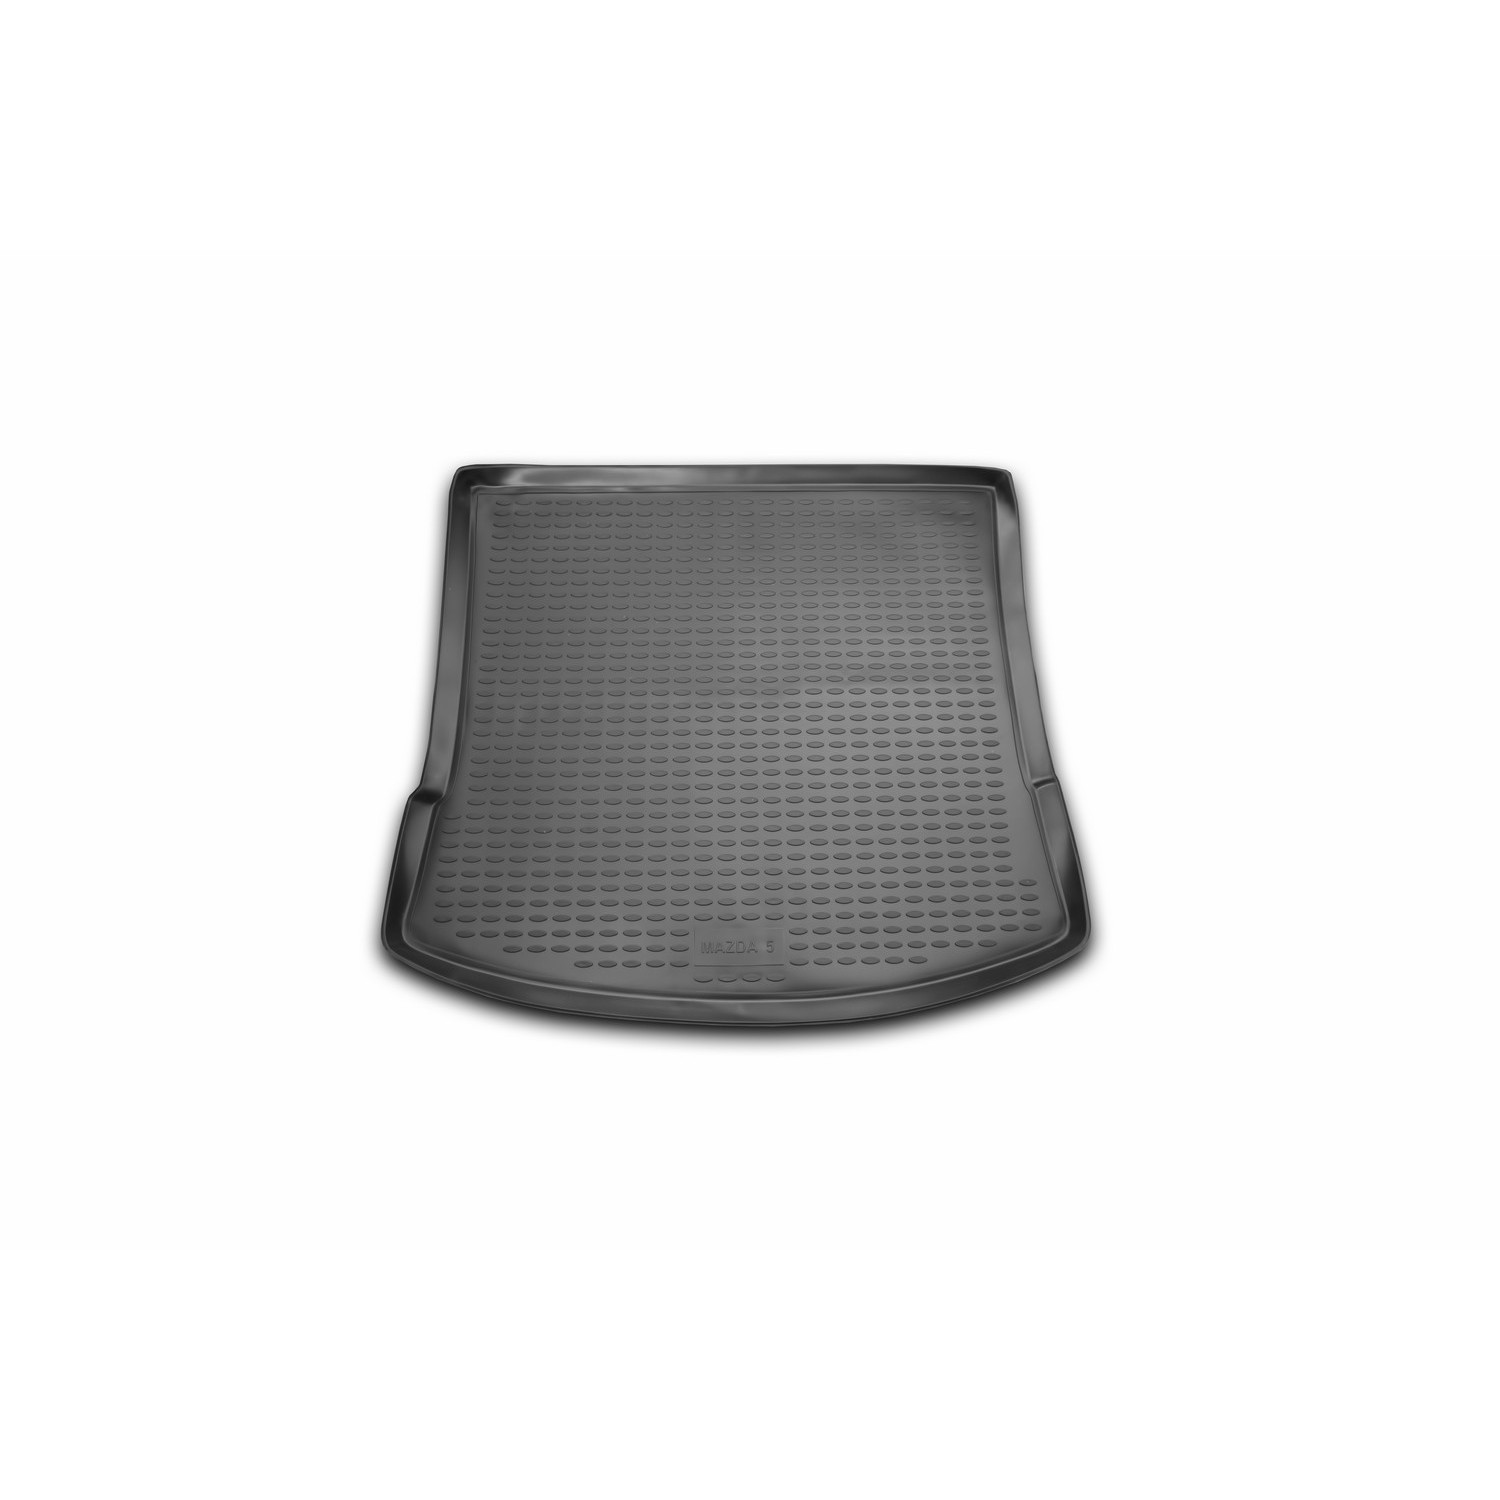 Trunk Mat For MAZDA 5 2005-2010 MV. Lengths. (PU) CARMZD00010